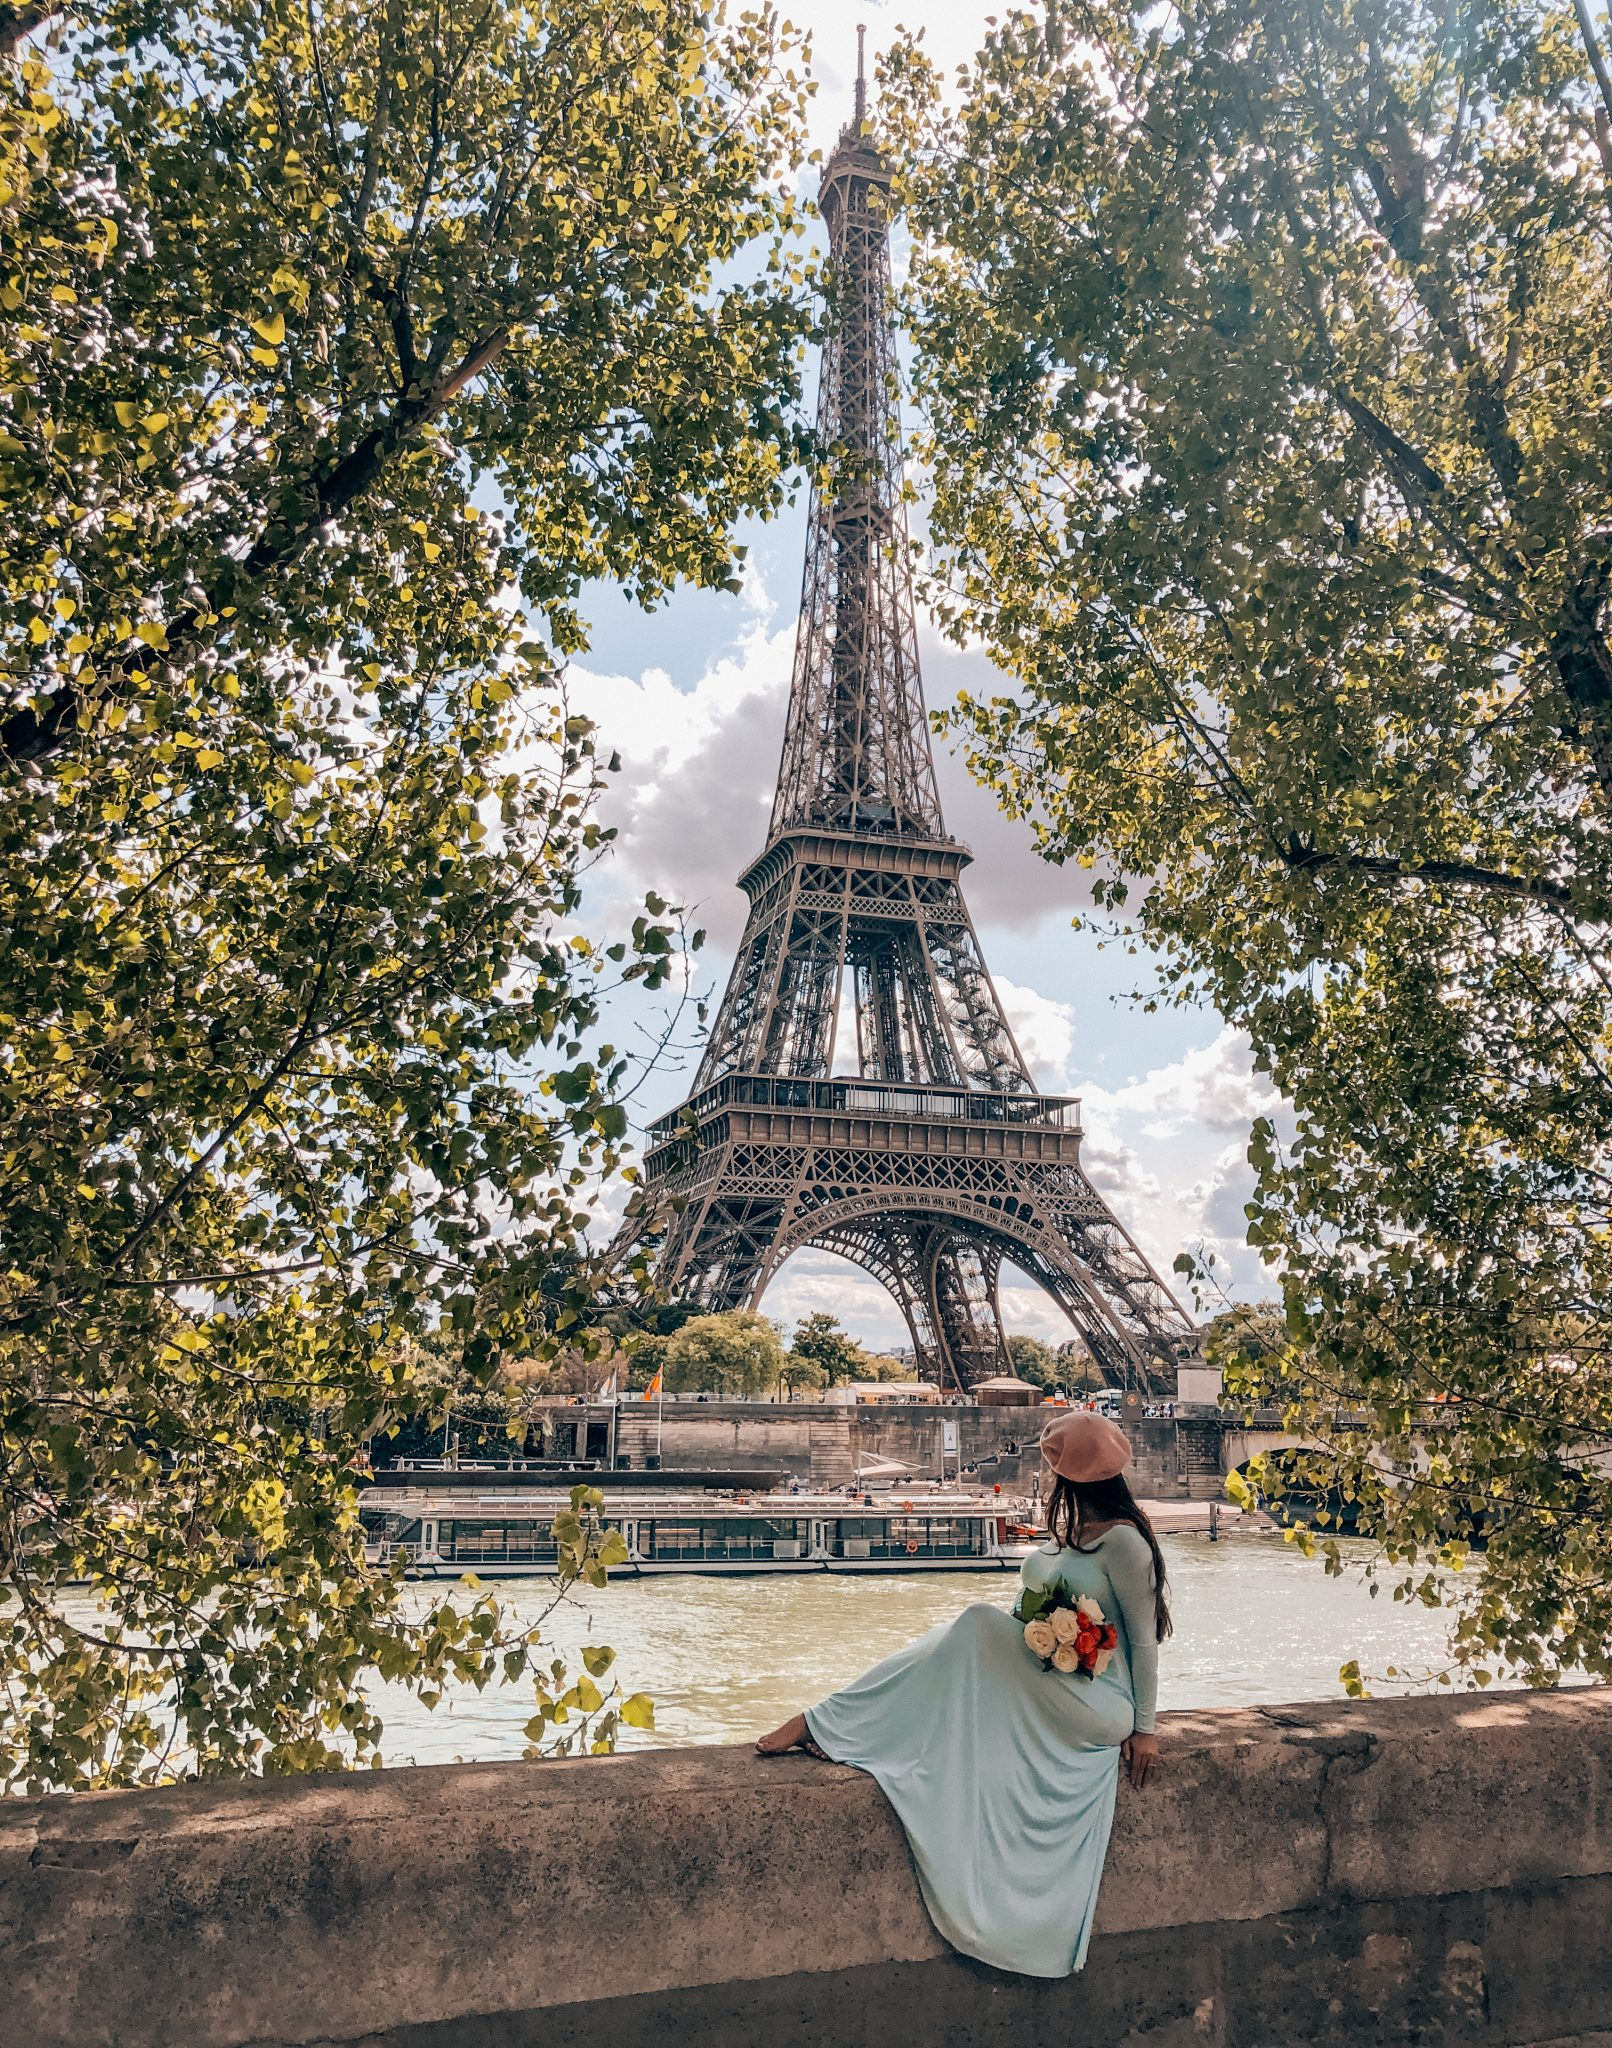 12 Best Photo Spots in Paris For Epic Instagram Shots - Quais de Seine